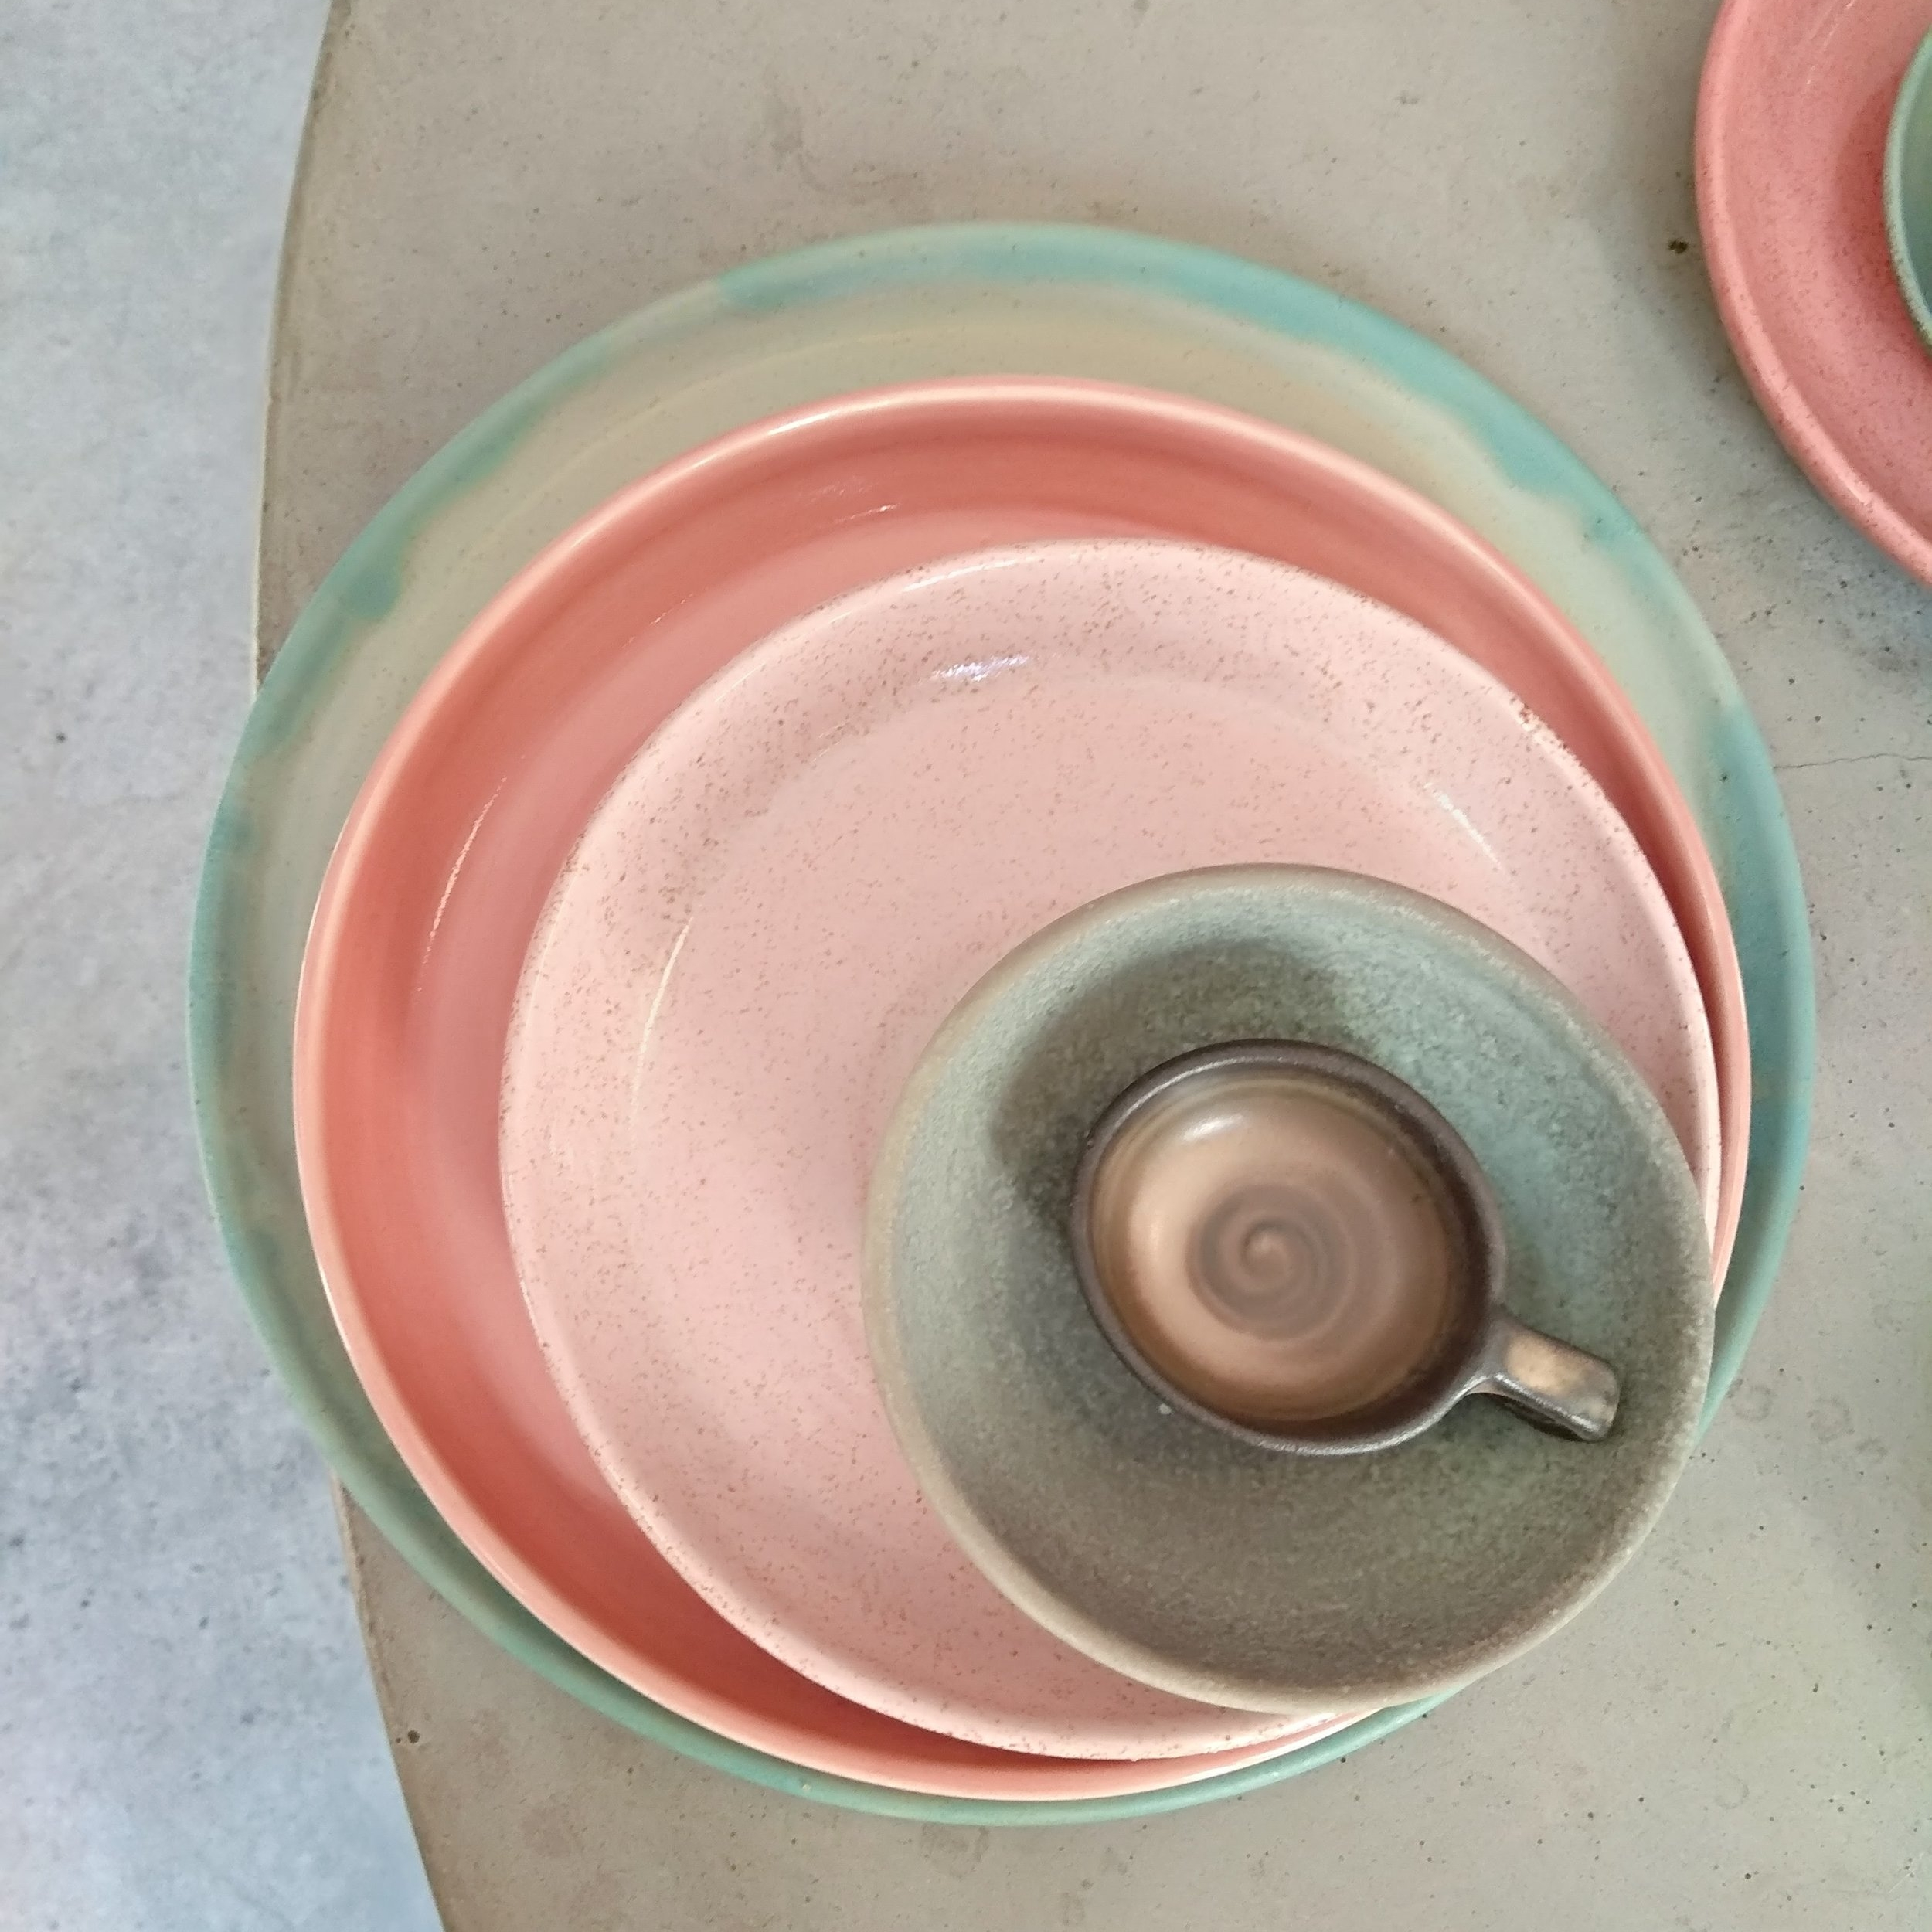 Plates jade green pink capuccino.jpg